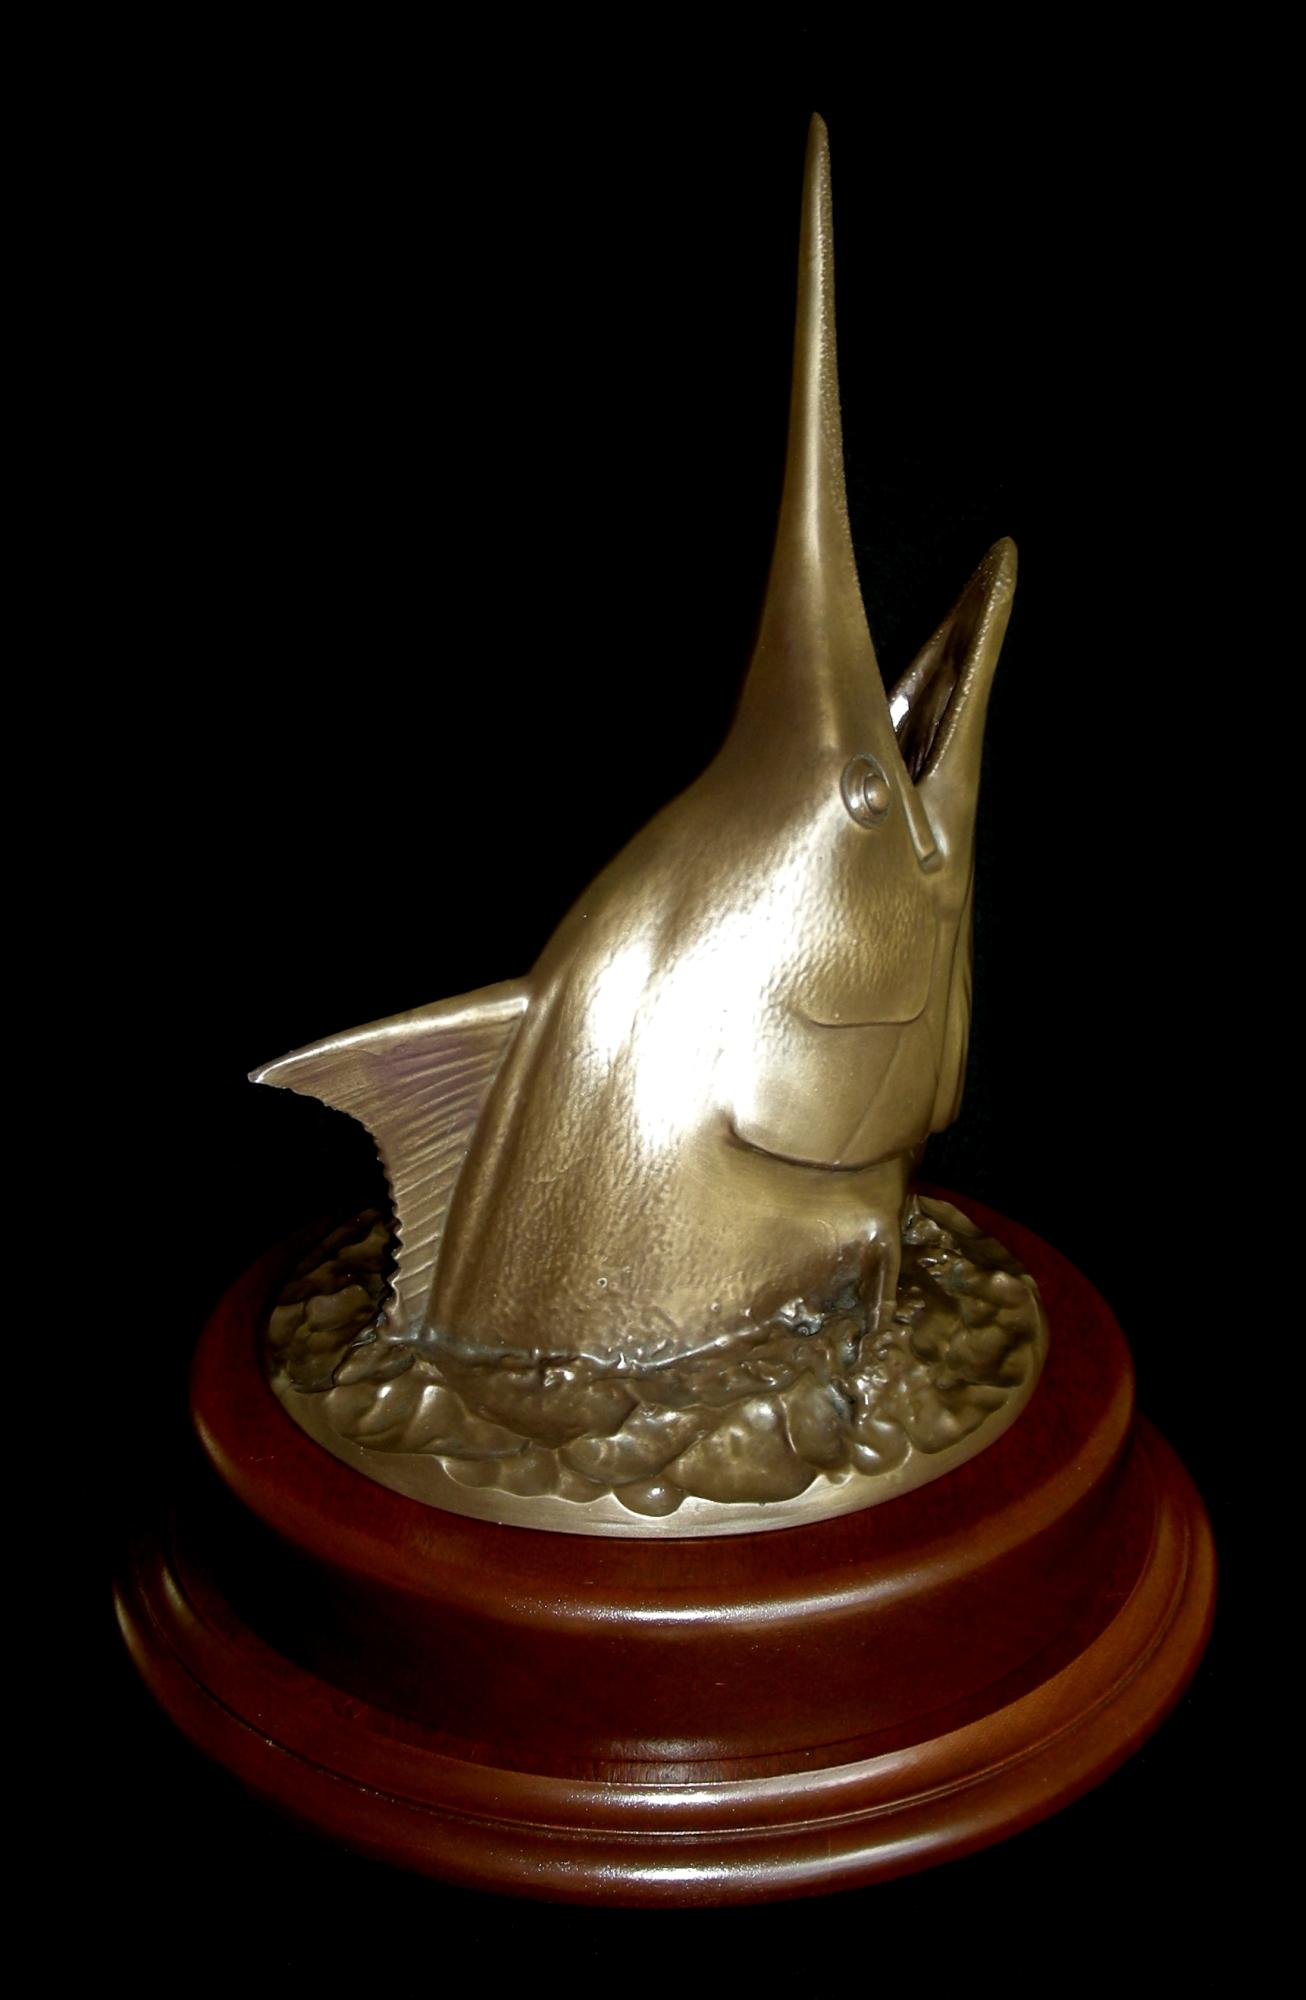 marlin_bronze_trophy_2.jpg